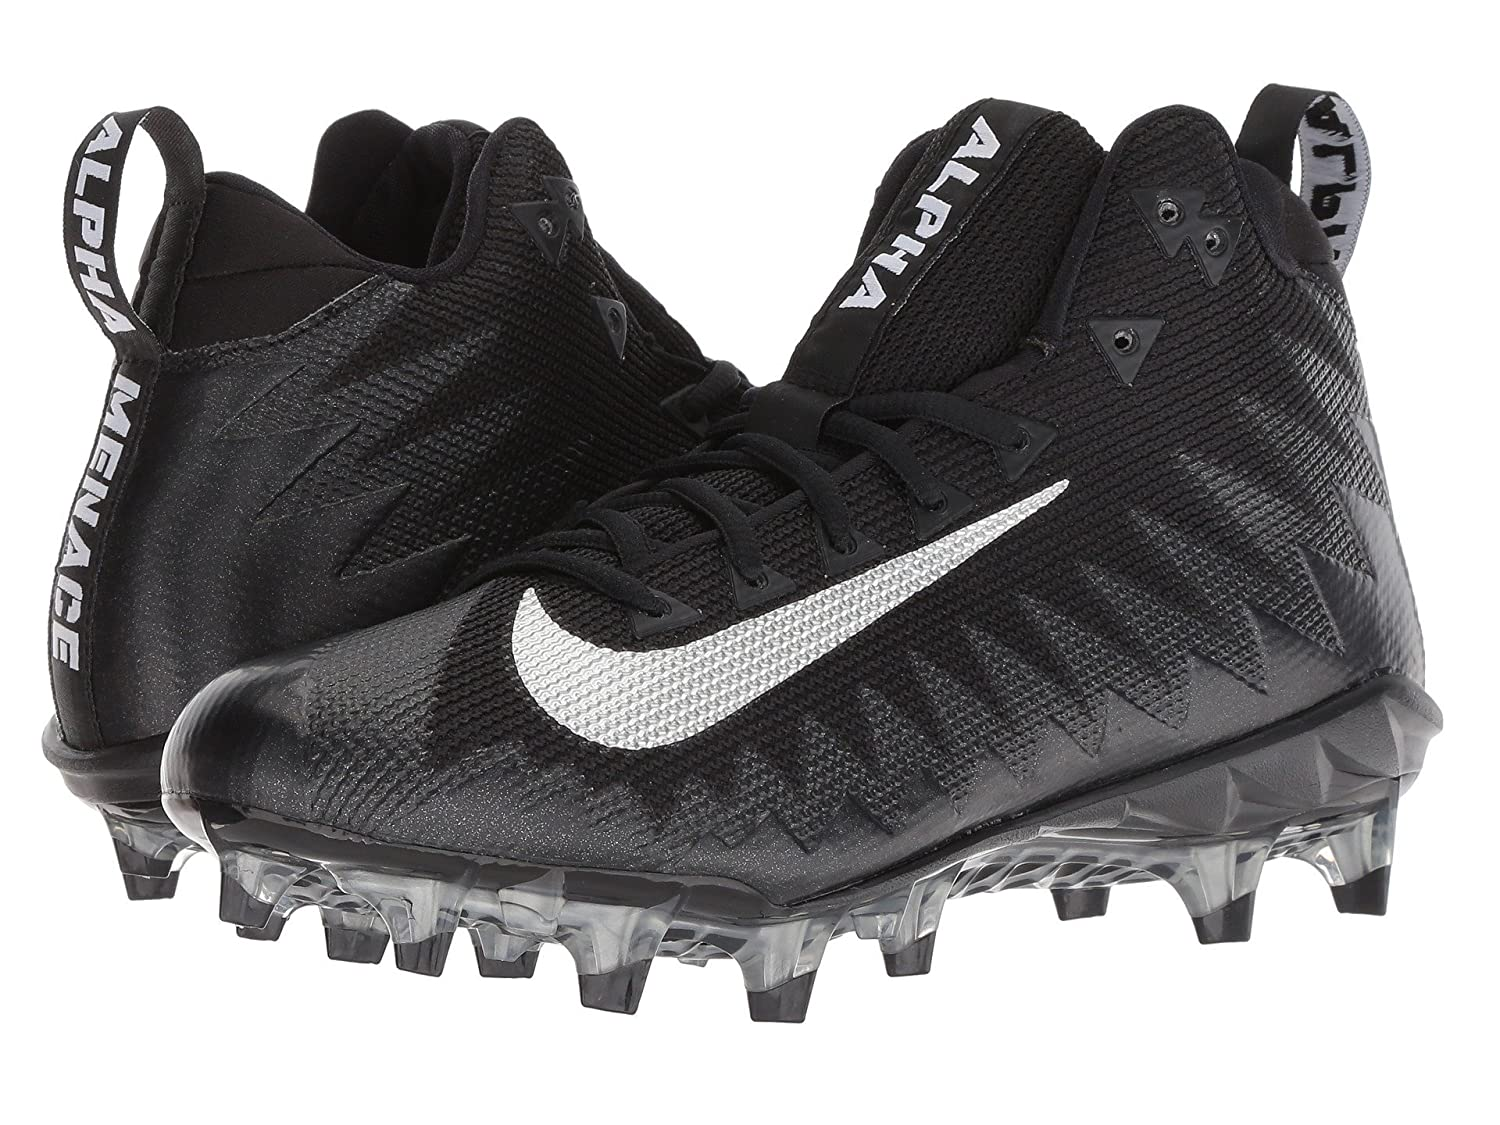 [NIKE(ナイキ)] メンズフットボールアメフトシューズ靴 Alpha Menace Pro Mid Black/Metallic Silver/Black 10.5 (28.5cm) D Medium B07D8LSXPL